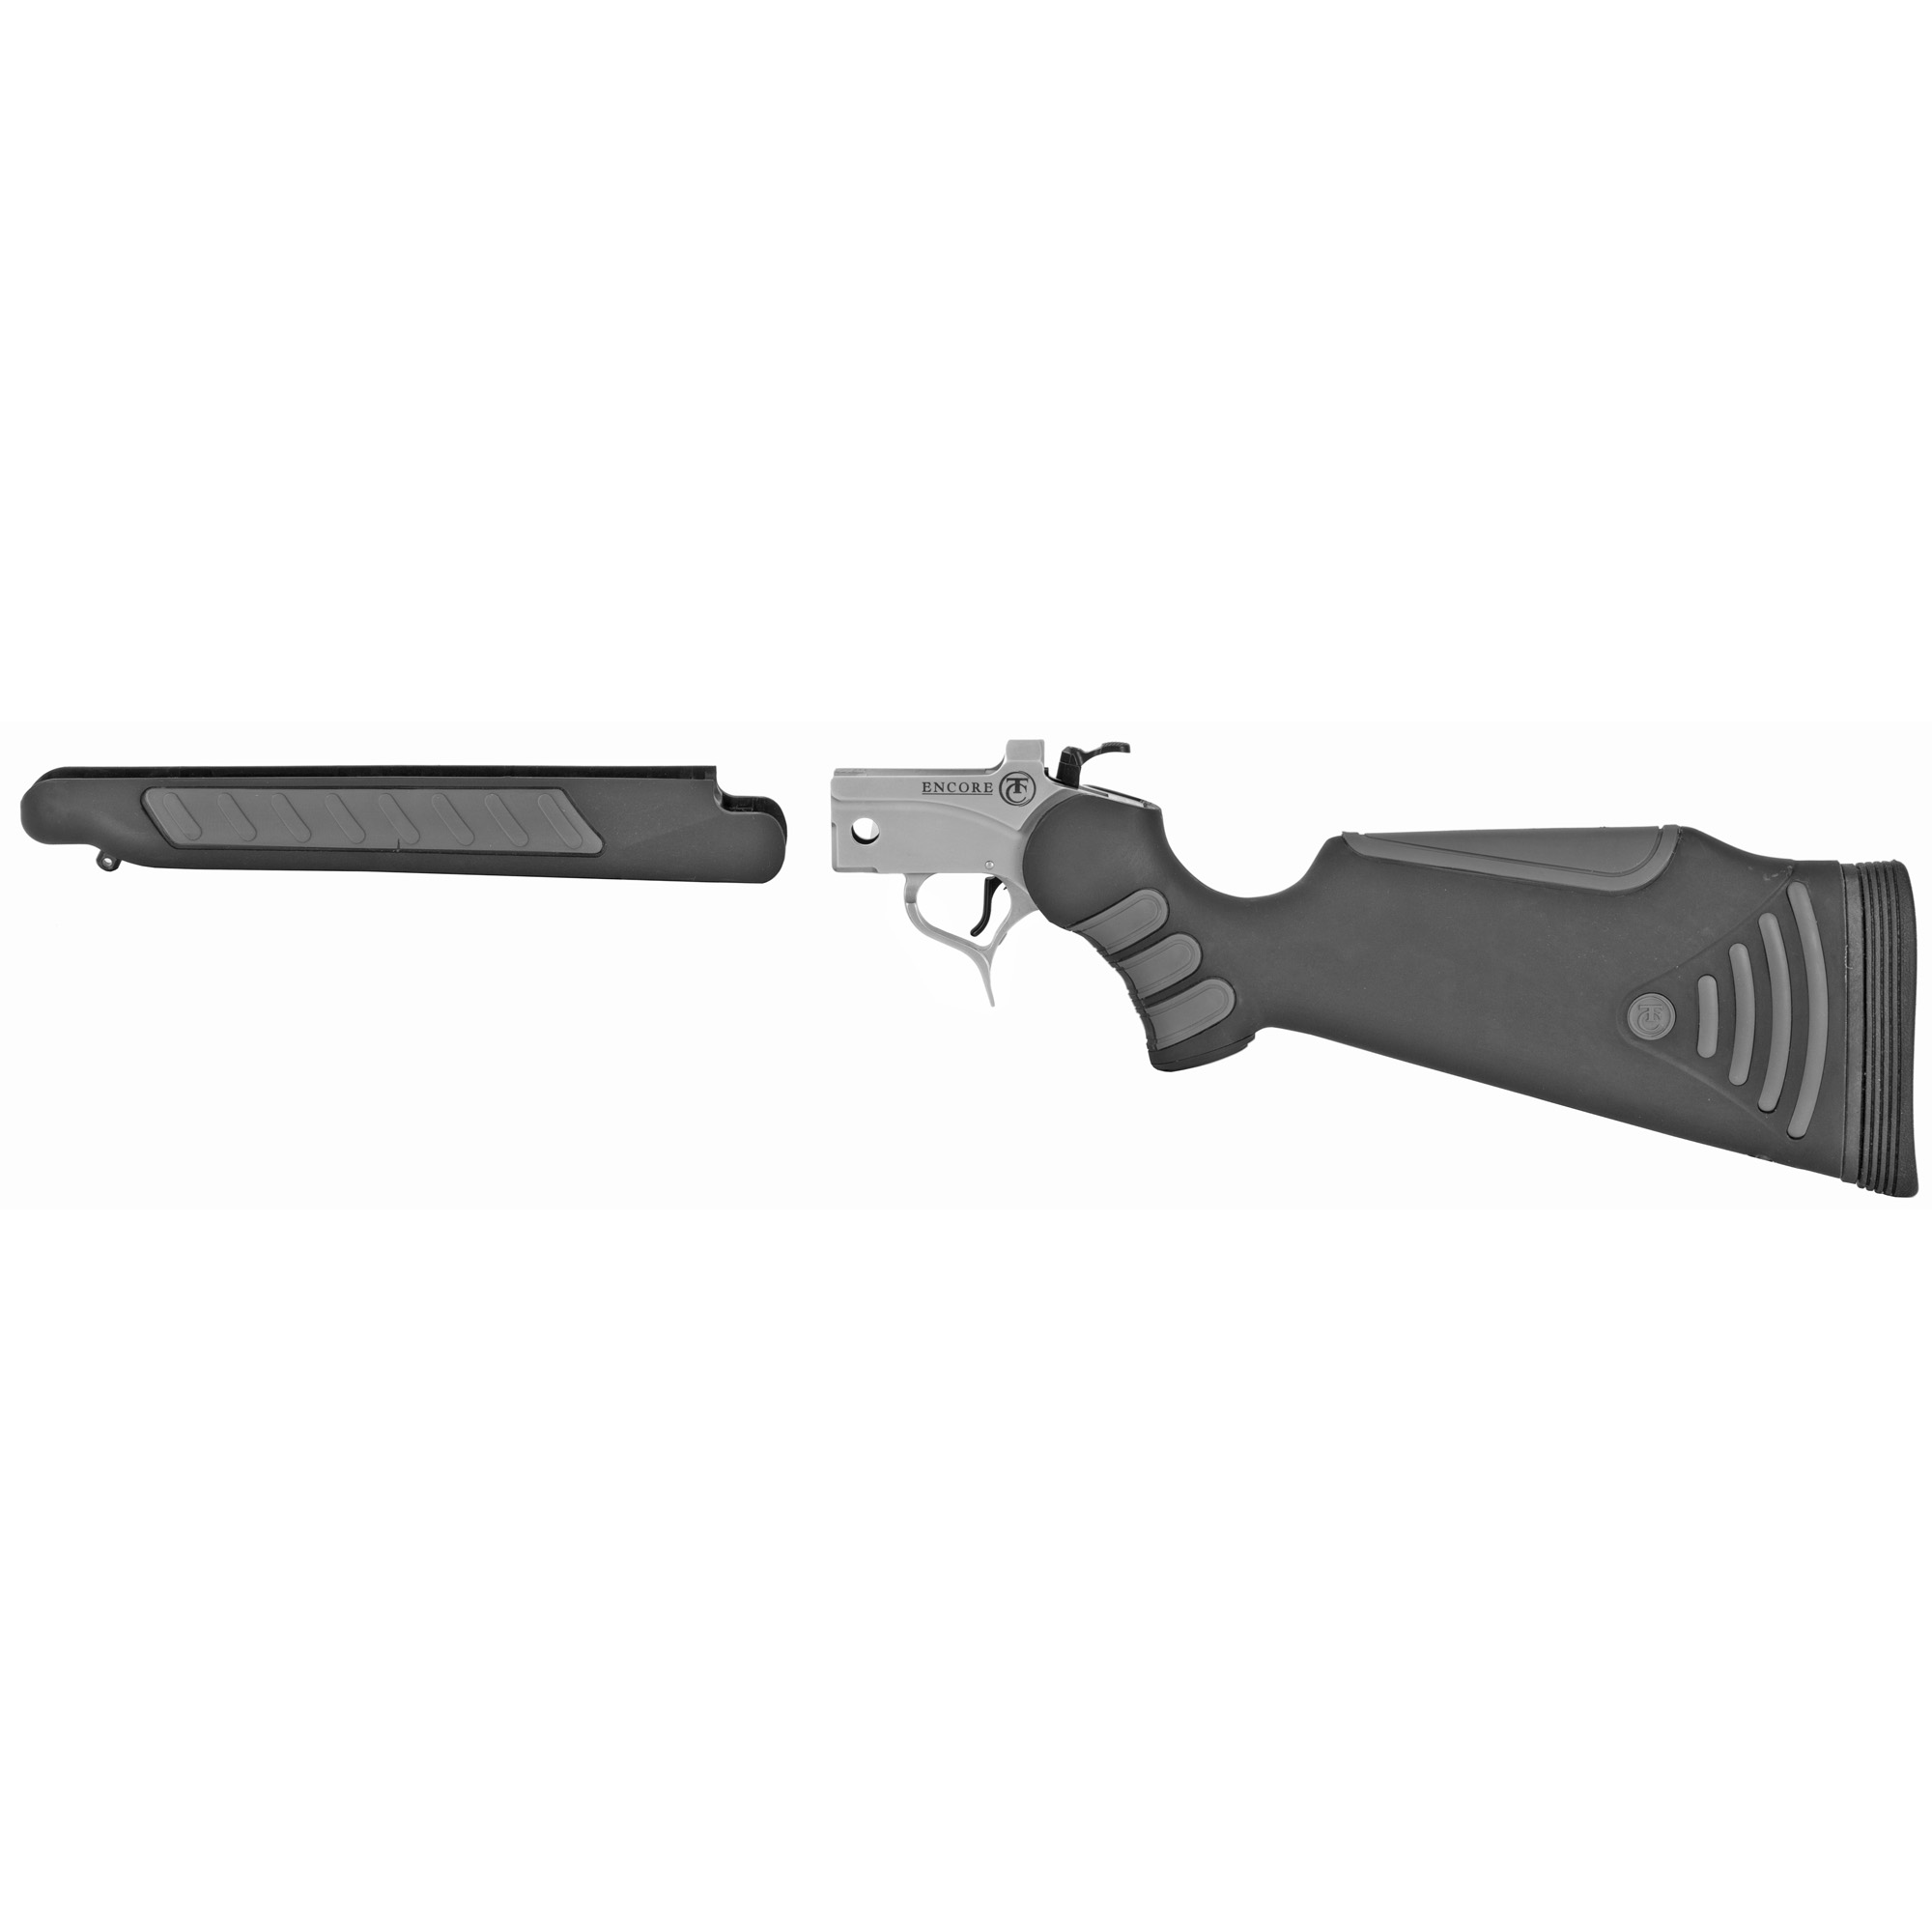 """Frame assemblies include the rifle frame"""" buttstock (or grip)"""" AND forend with forend screws and hinge pin. Frame assemblies must be shipped to and sold through an FFL dealer."""